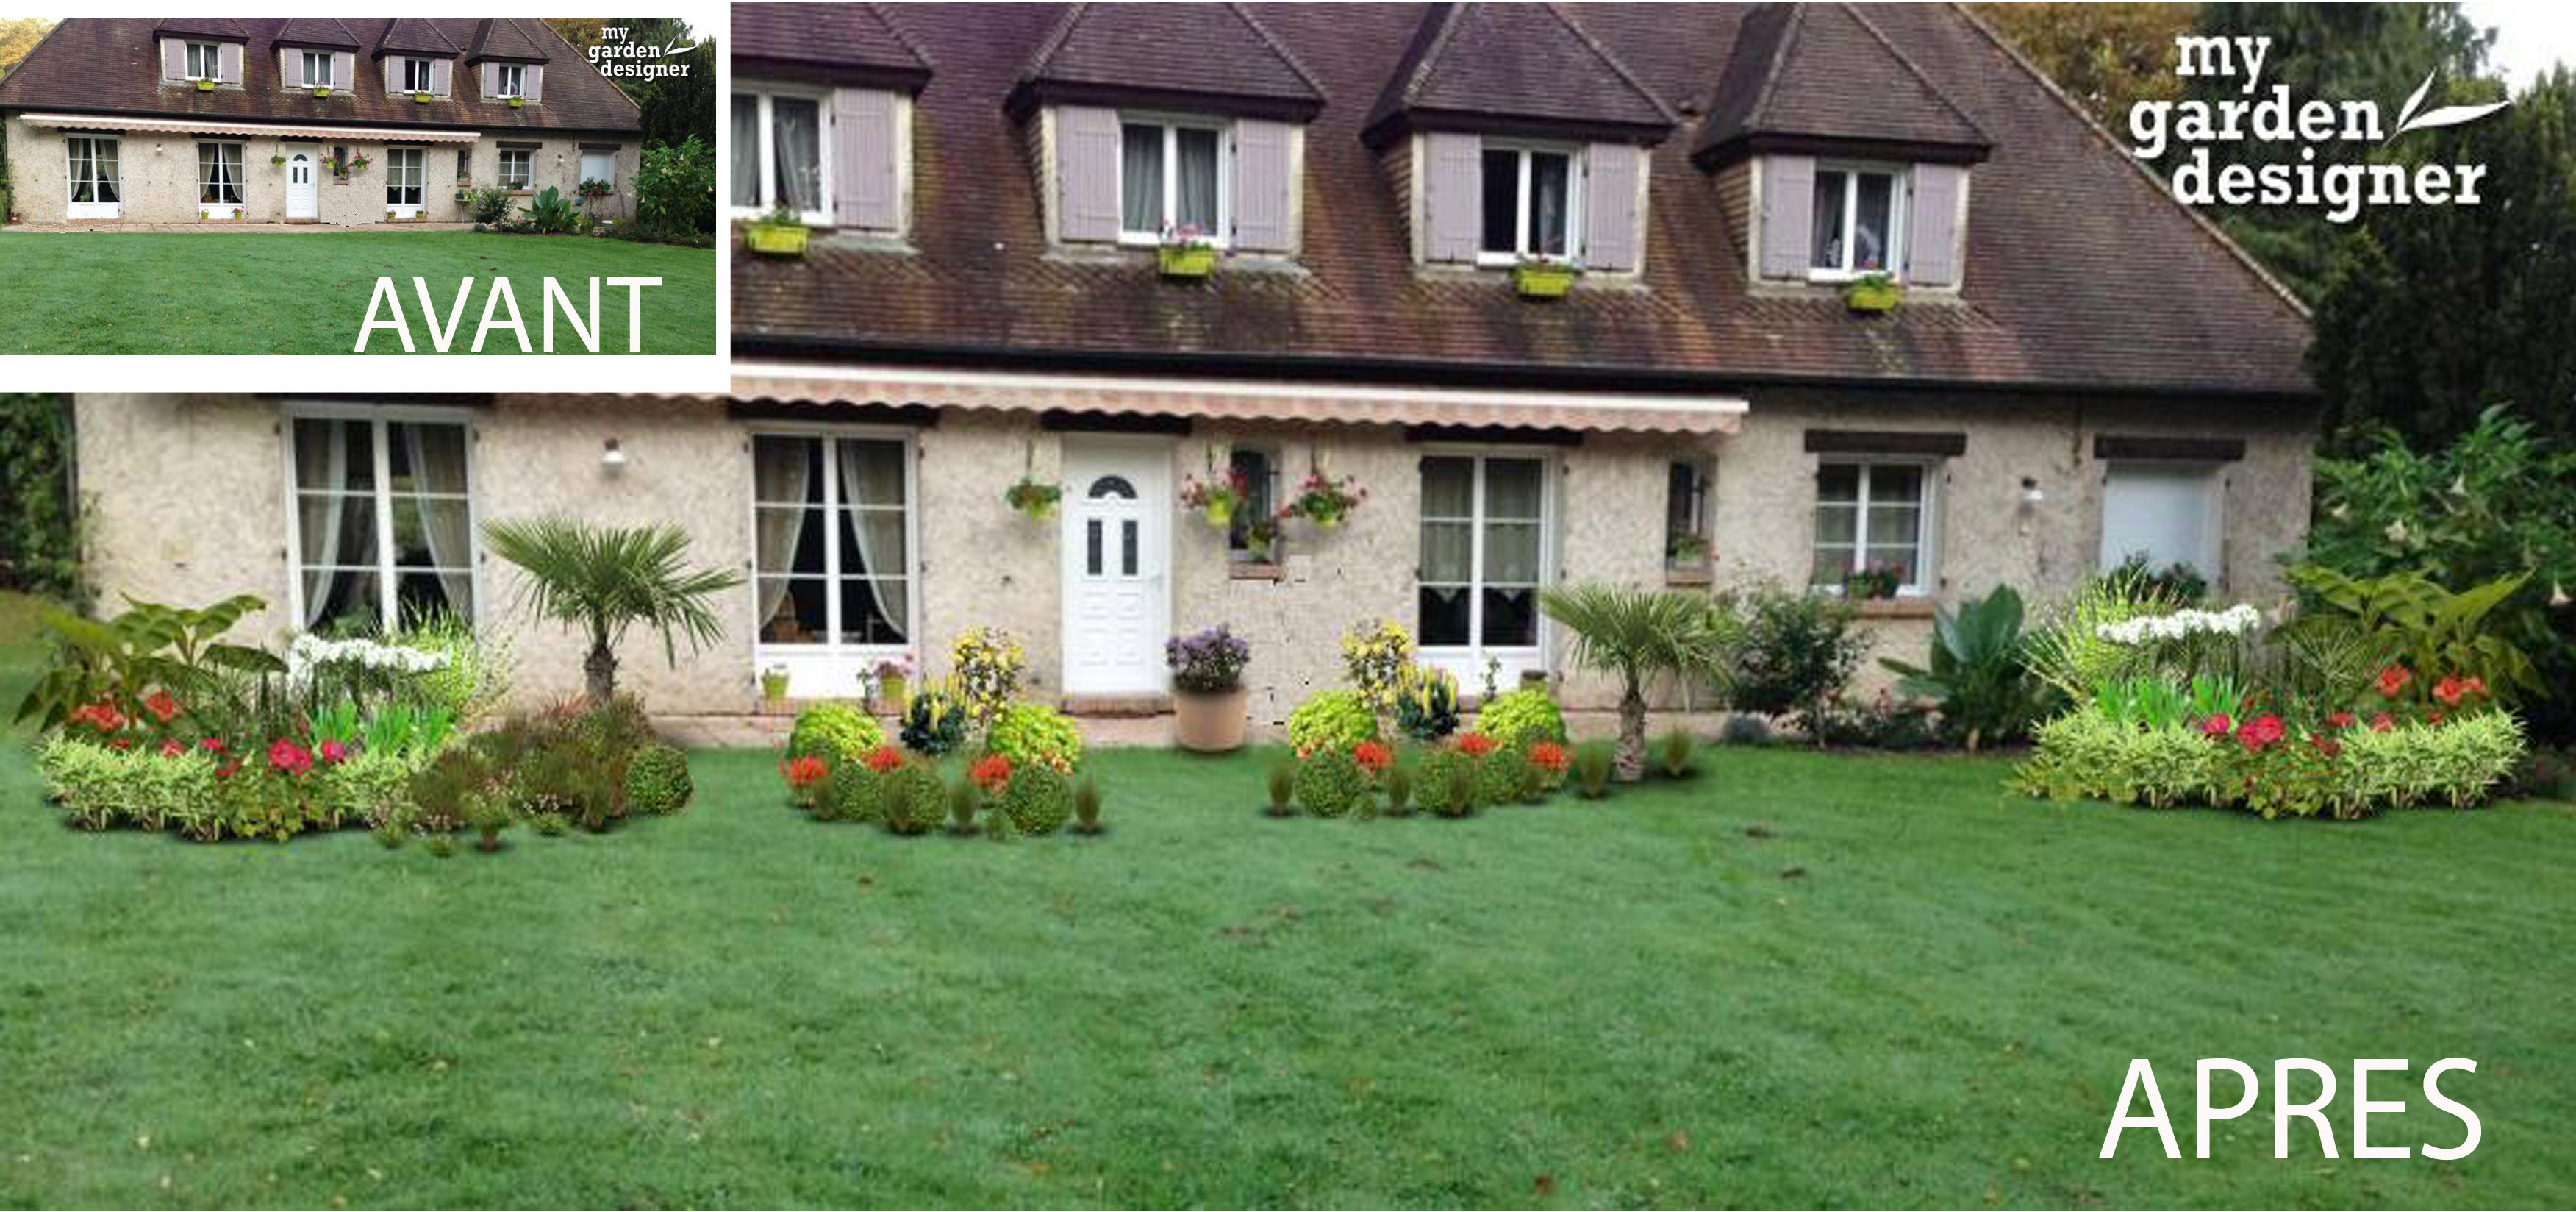 Amenagement d un jardin devant une maison monjardin - Amenagement abords maison ...